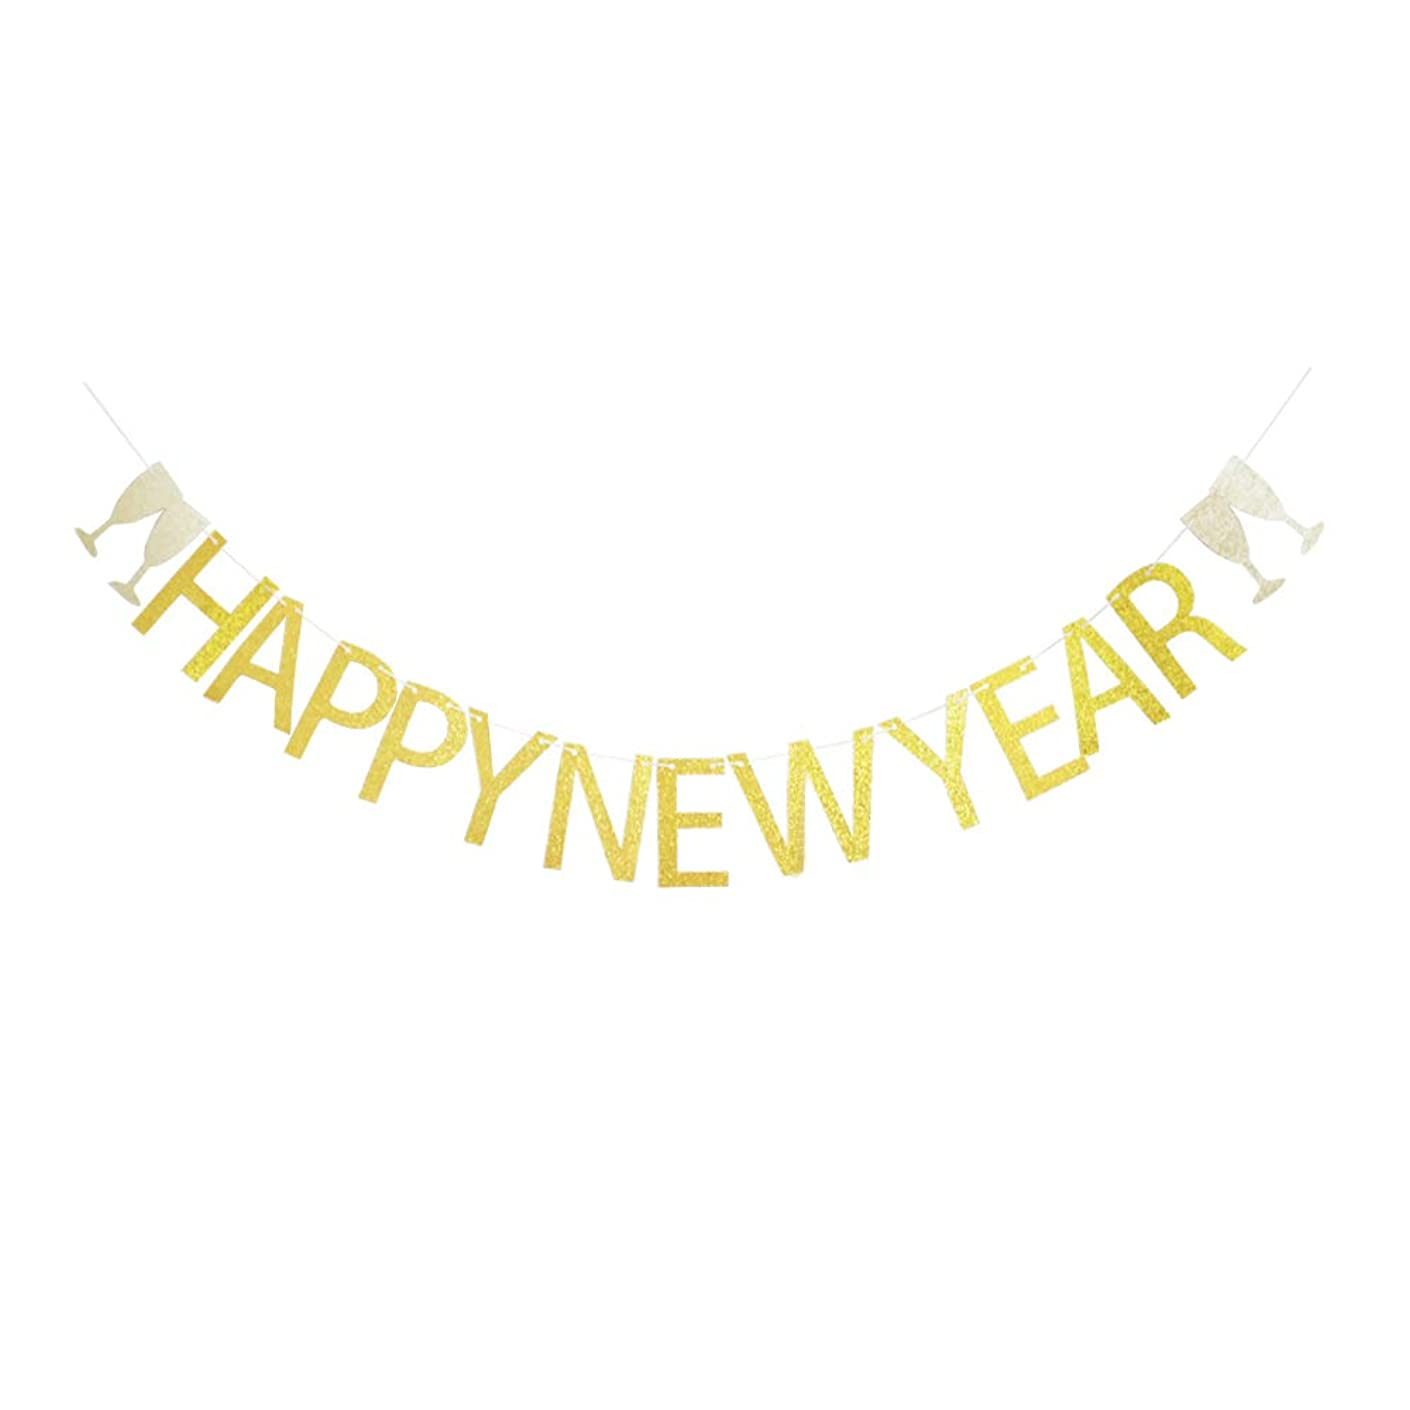 Happy New Year Banner, Gold Glitter Decorations for New Year/New Year Eve Party